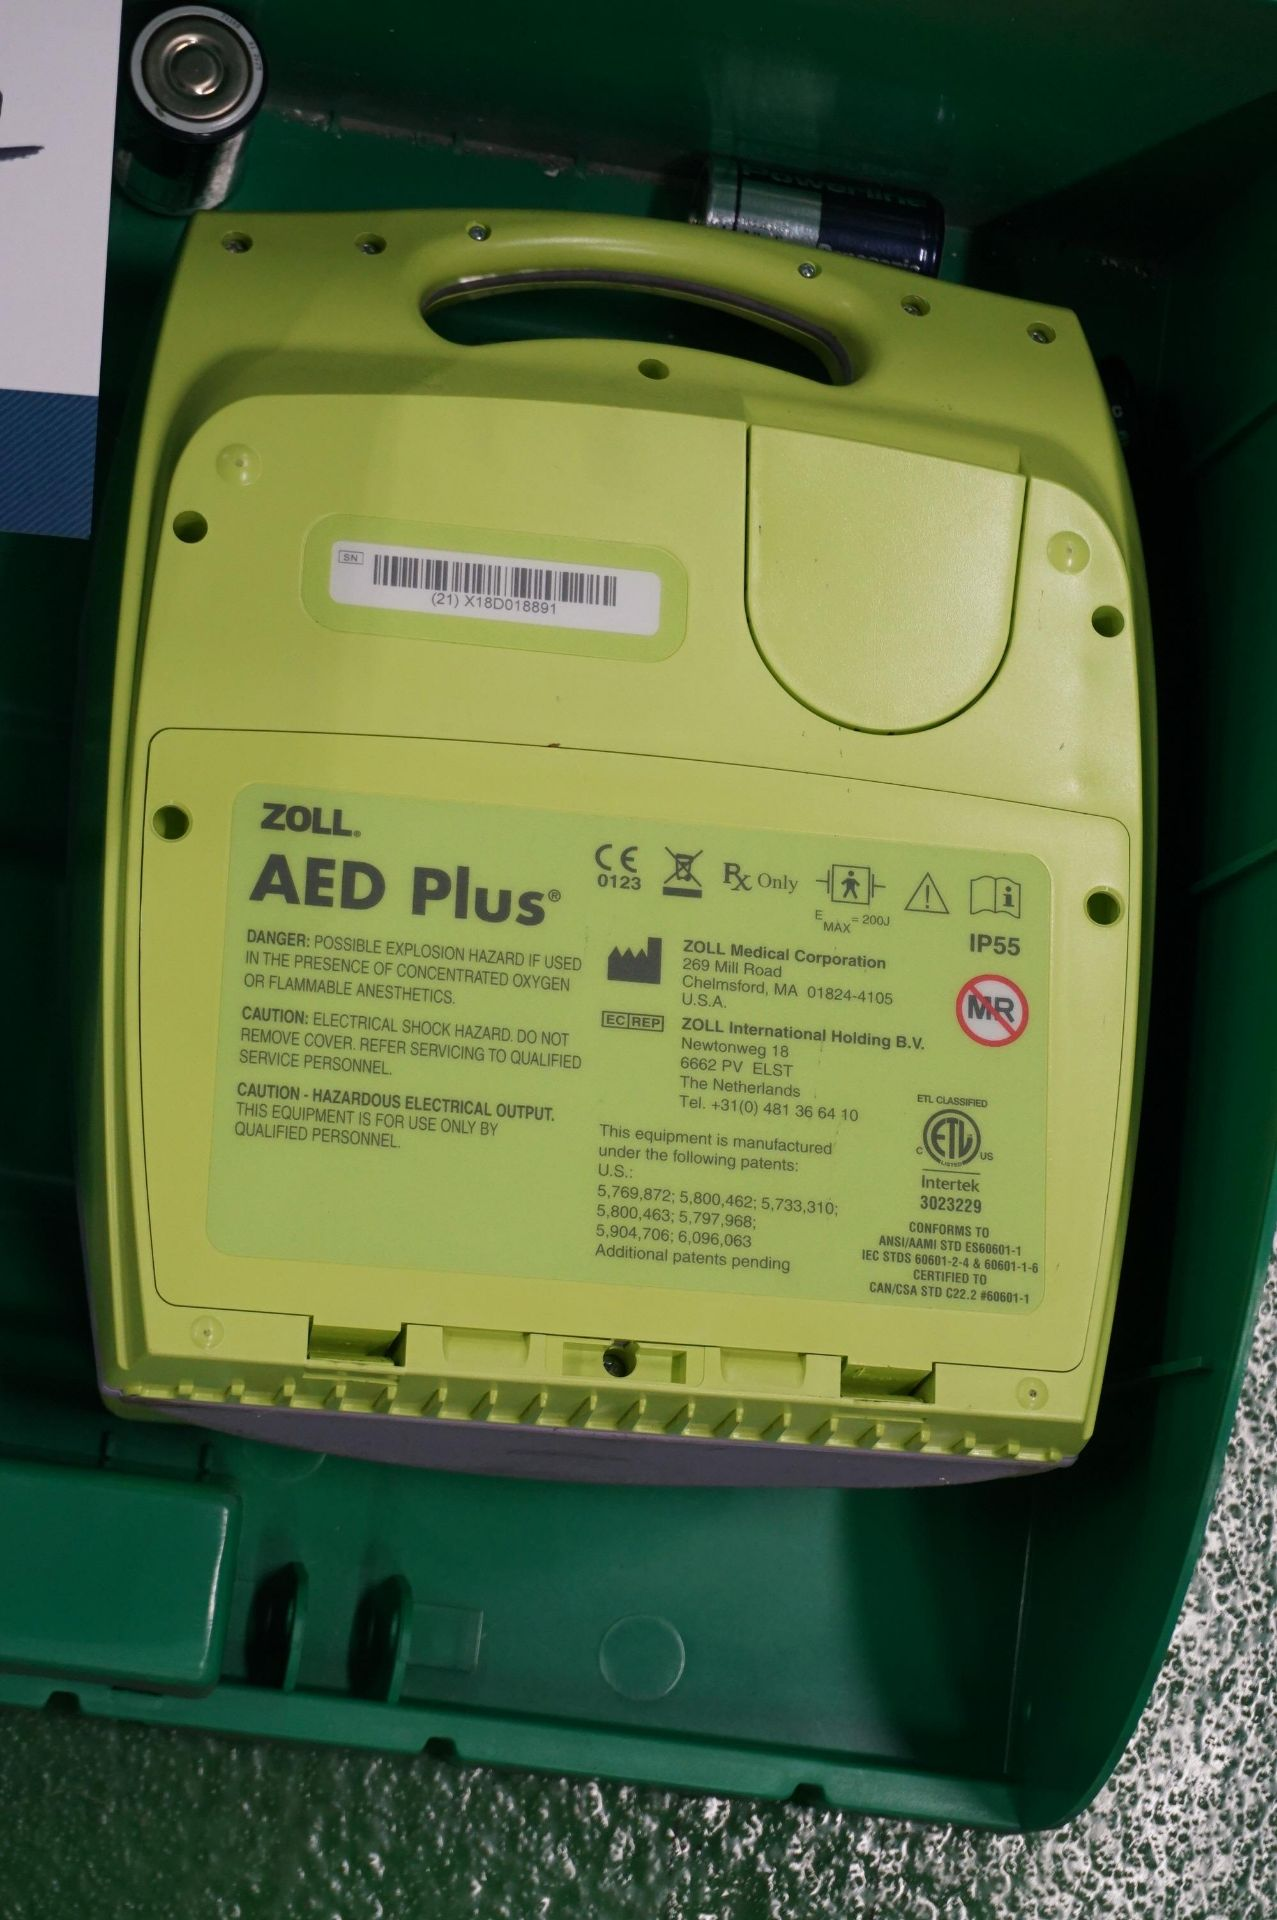 2 x Zoll AEDPLUS Avia 100:X2A100-XX100 battery operated defibrillator - Image 3 of 3